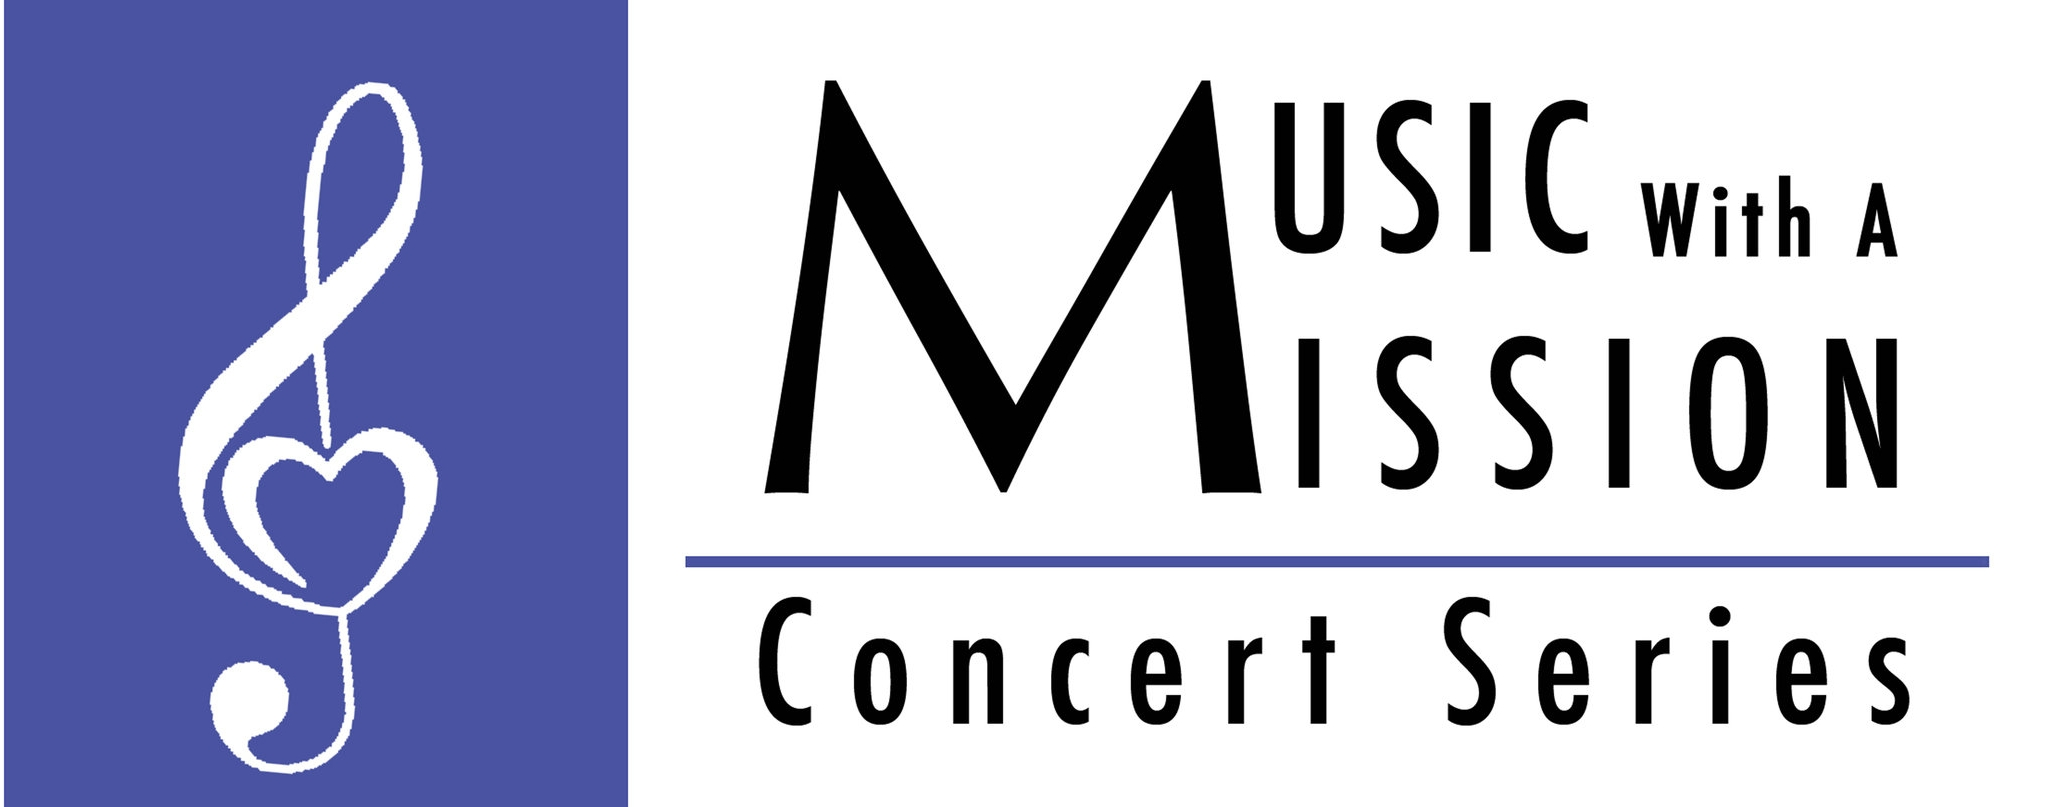 music-with-a-mission-logo Larger (2)_edited-1.jpg